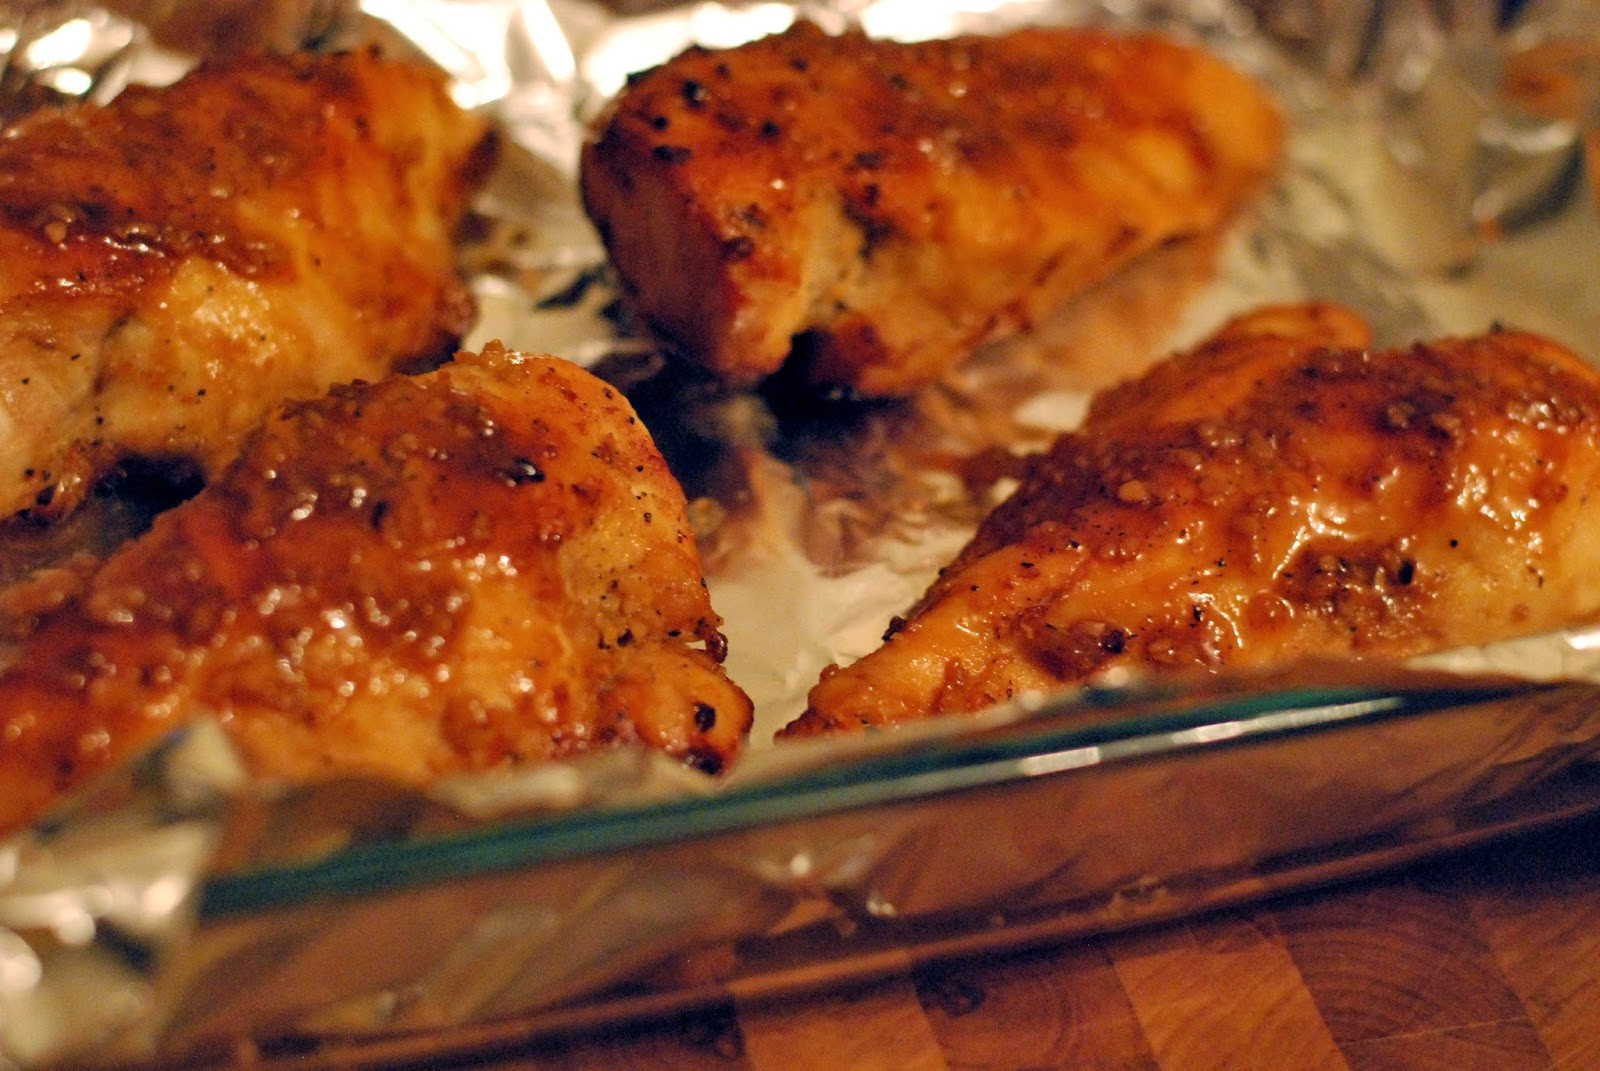 Chicken Recipes Baked  The World s Best Baked Chicken Aunt Bee s Recipes